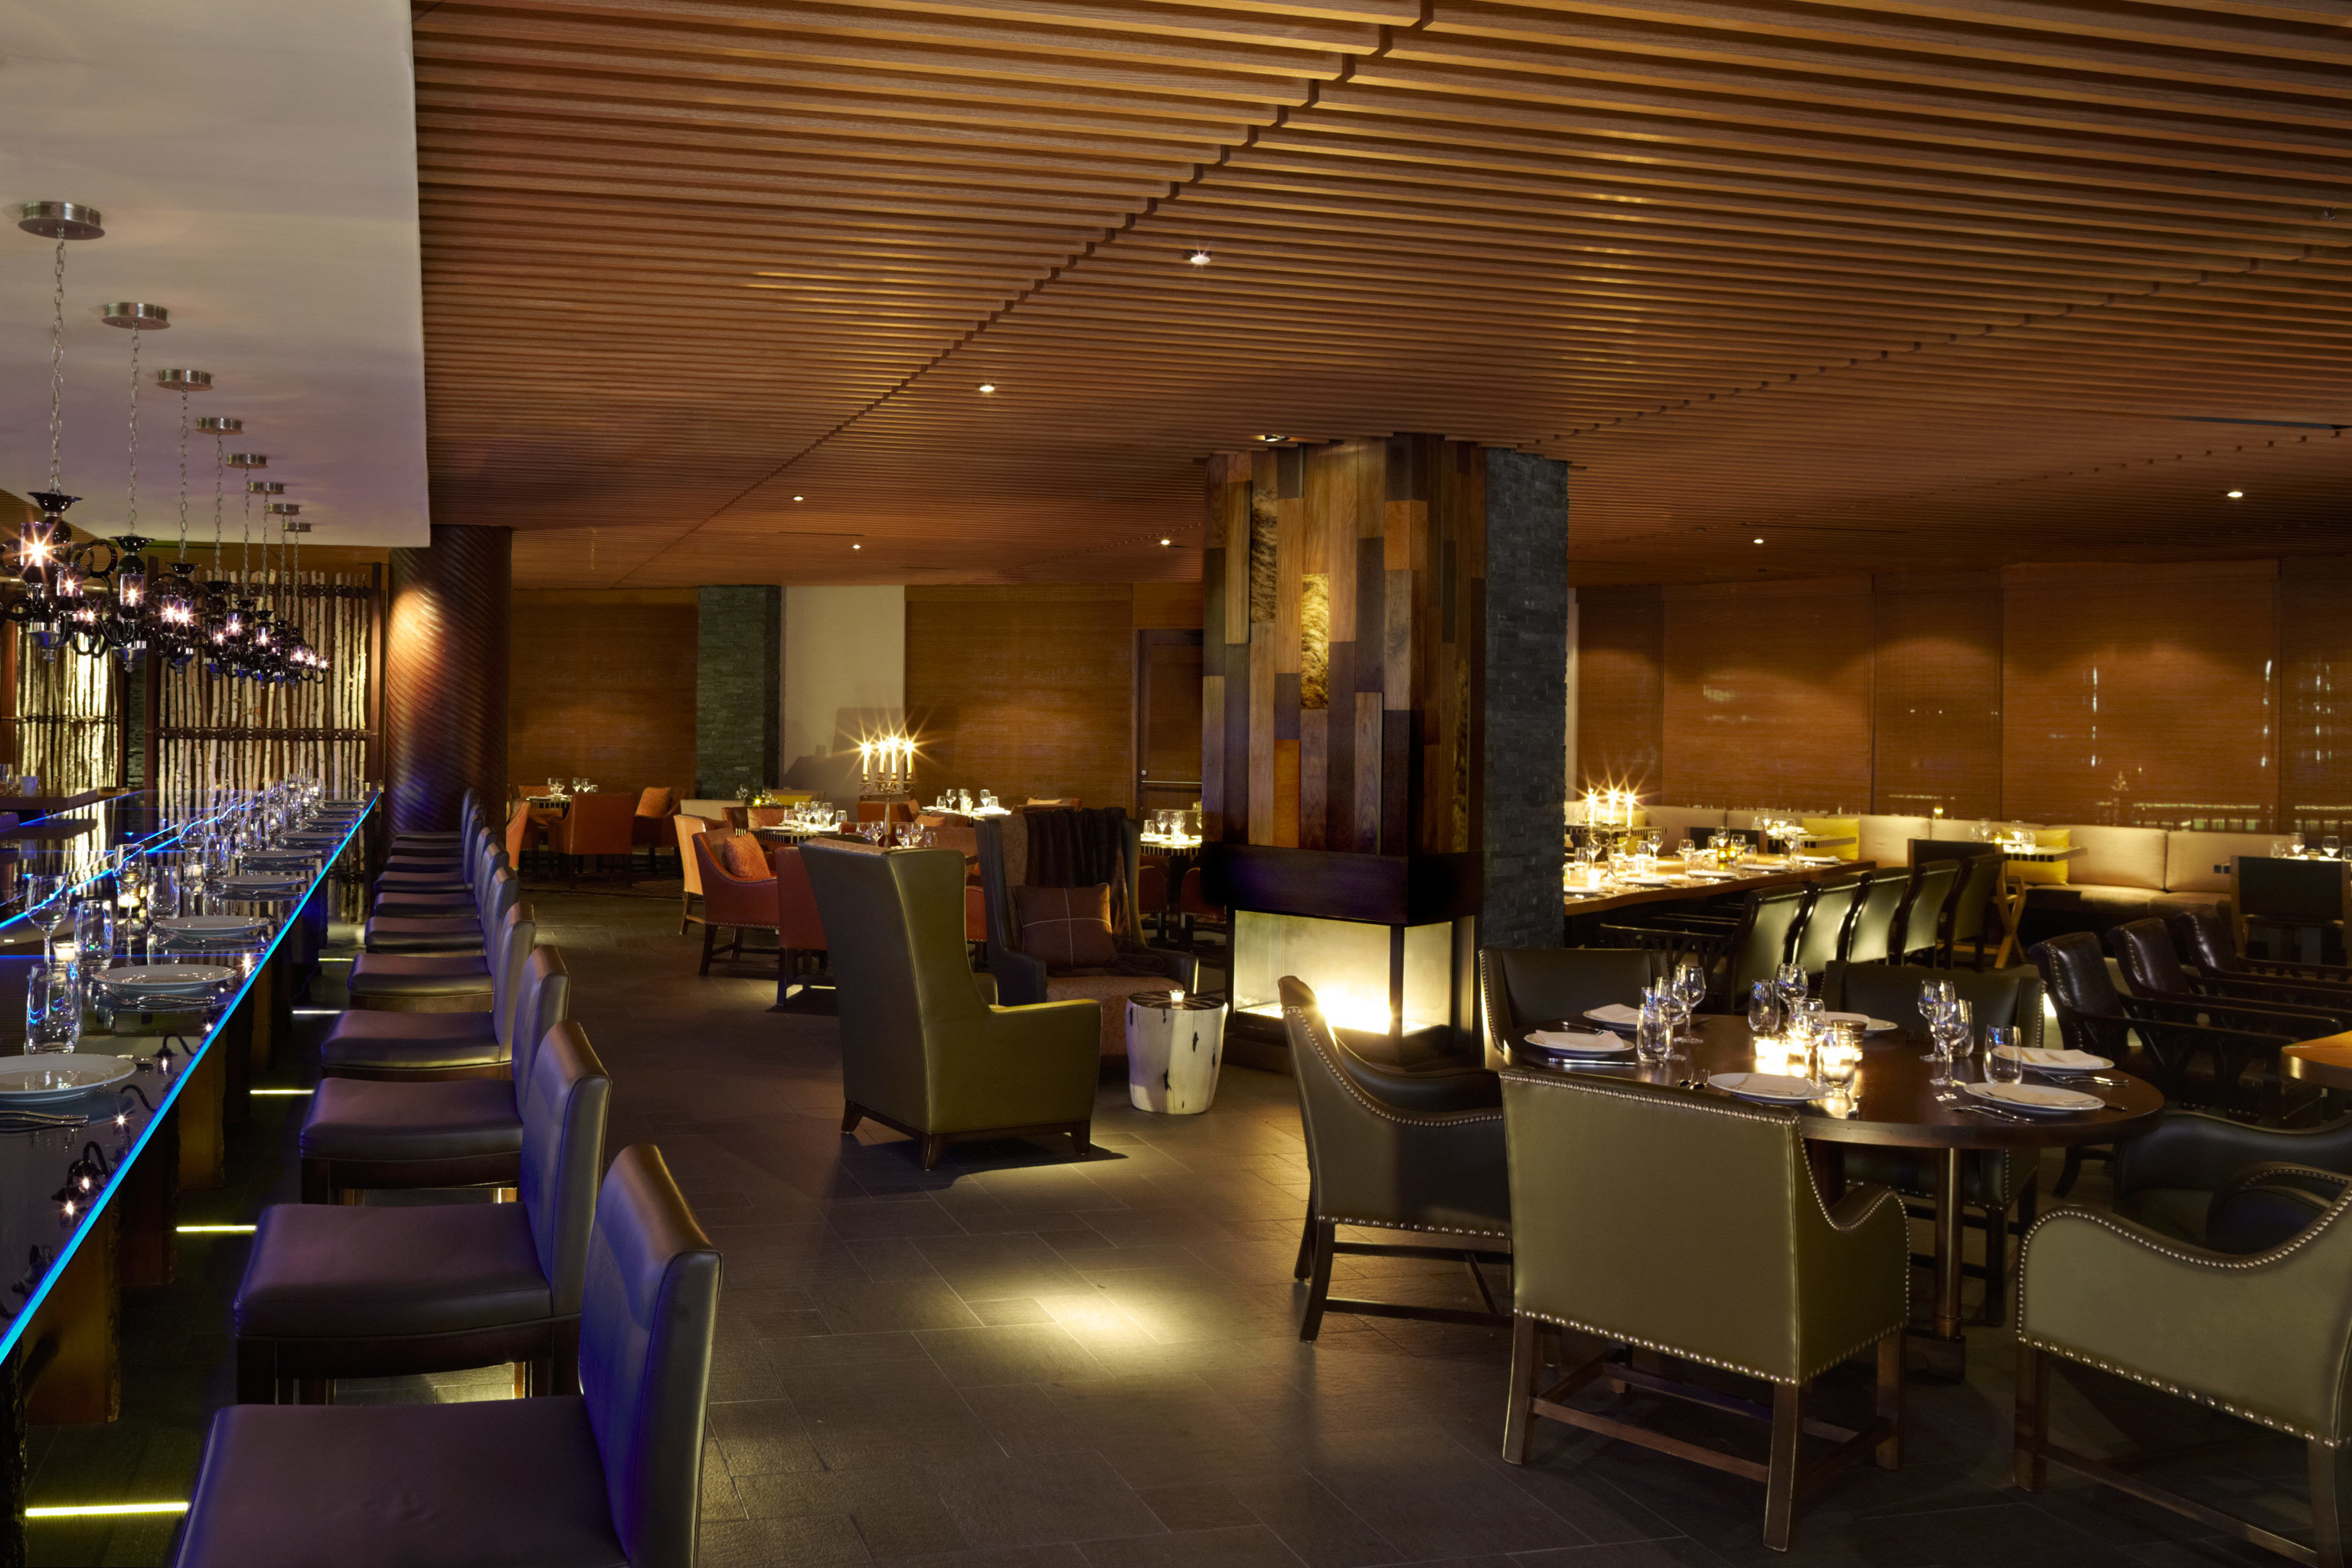 Dining Drink Eat Hotels Luxury Luxury Travel Mountains + Skiing indoor floor ceiling Lobby restaurant function hall interior design lighting convention center meal Bar